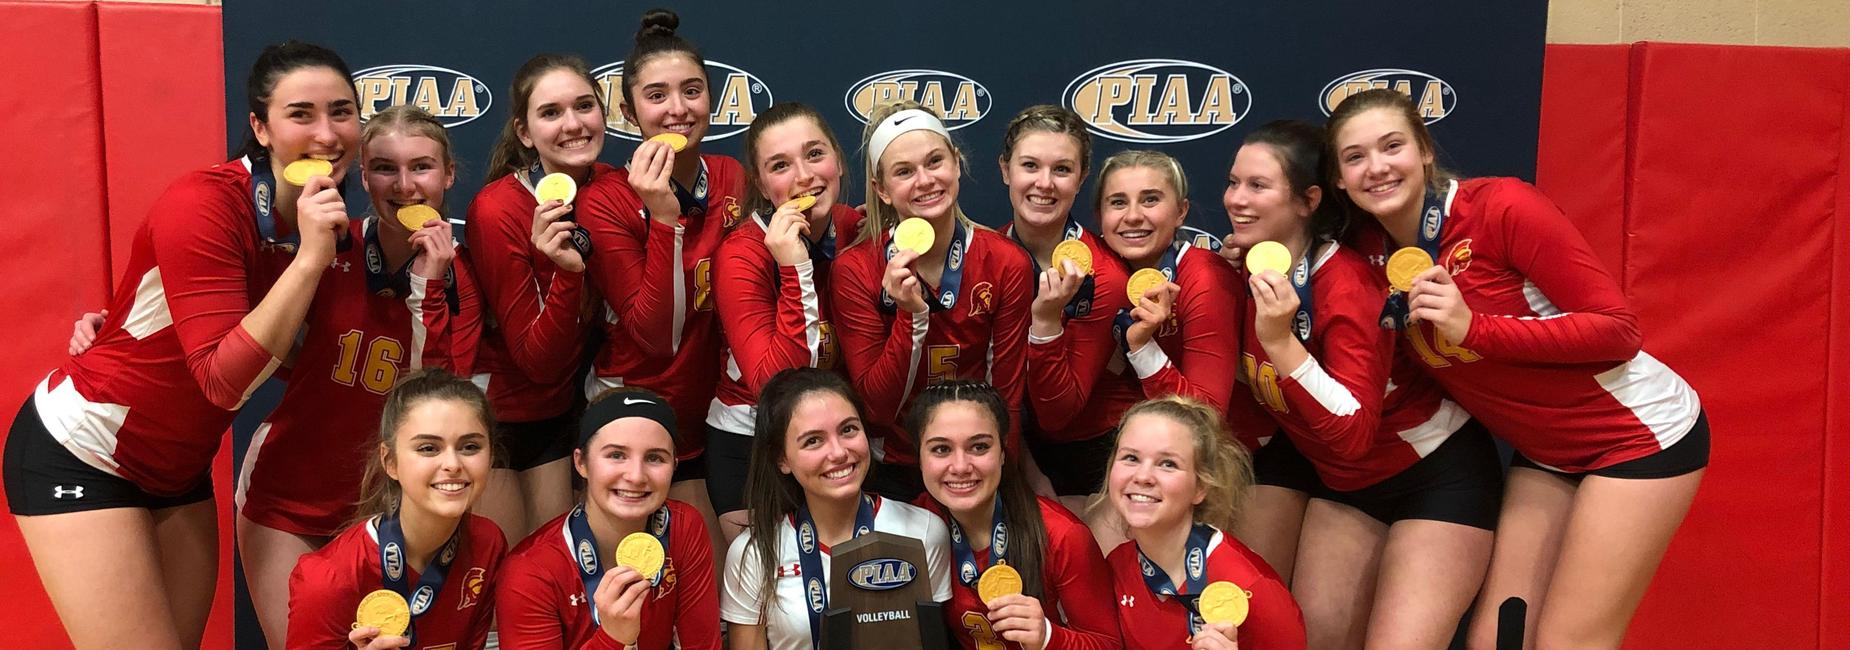 PIAA State Champs Volleyball North Catholic